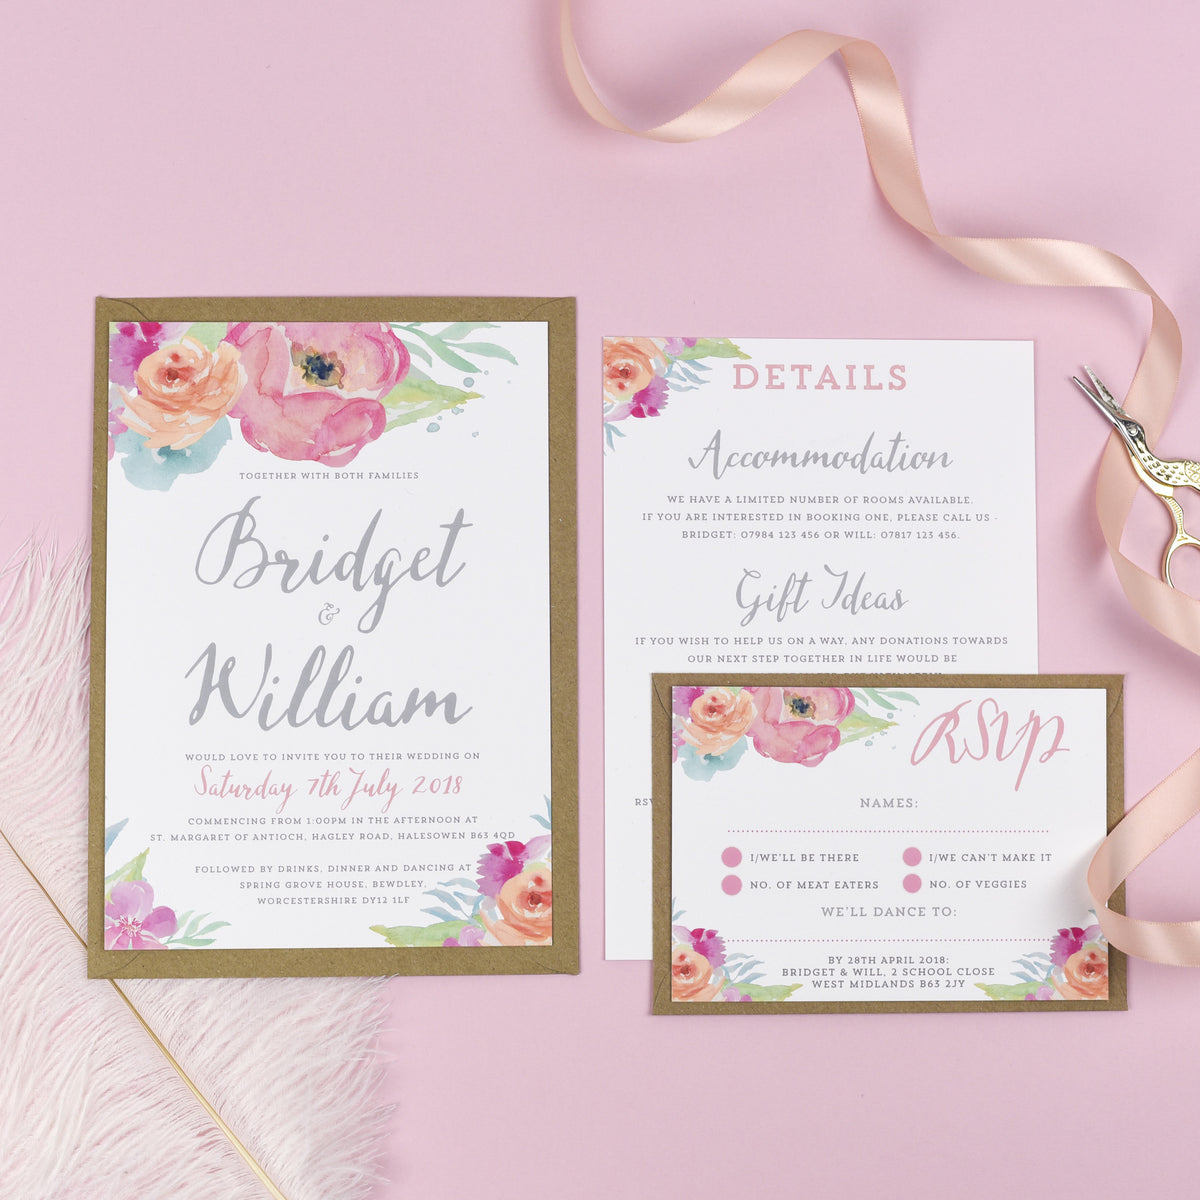 Our Wedding Stationery